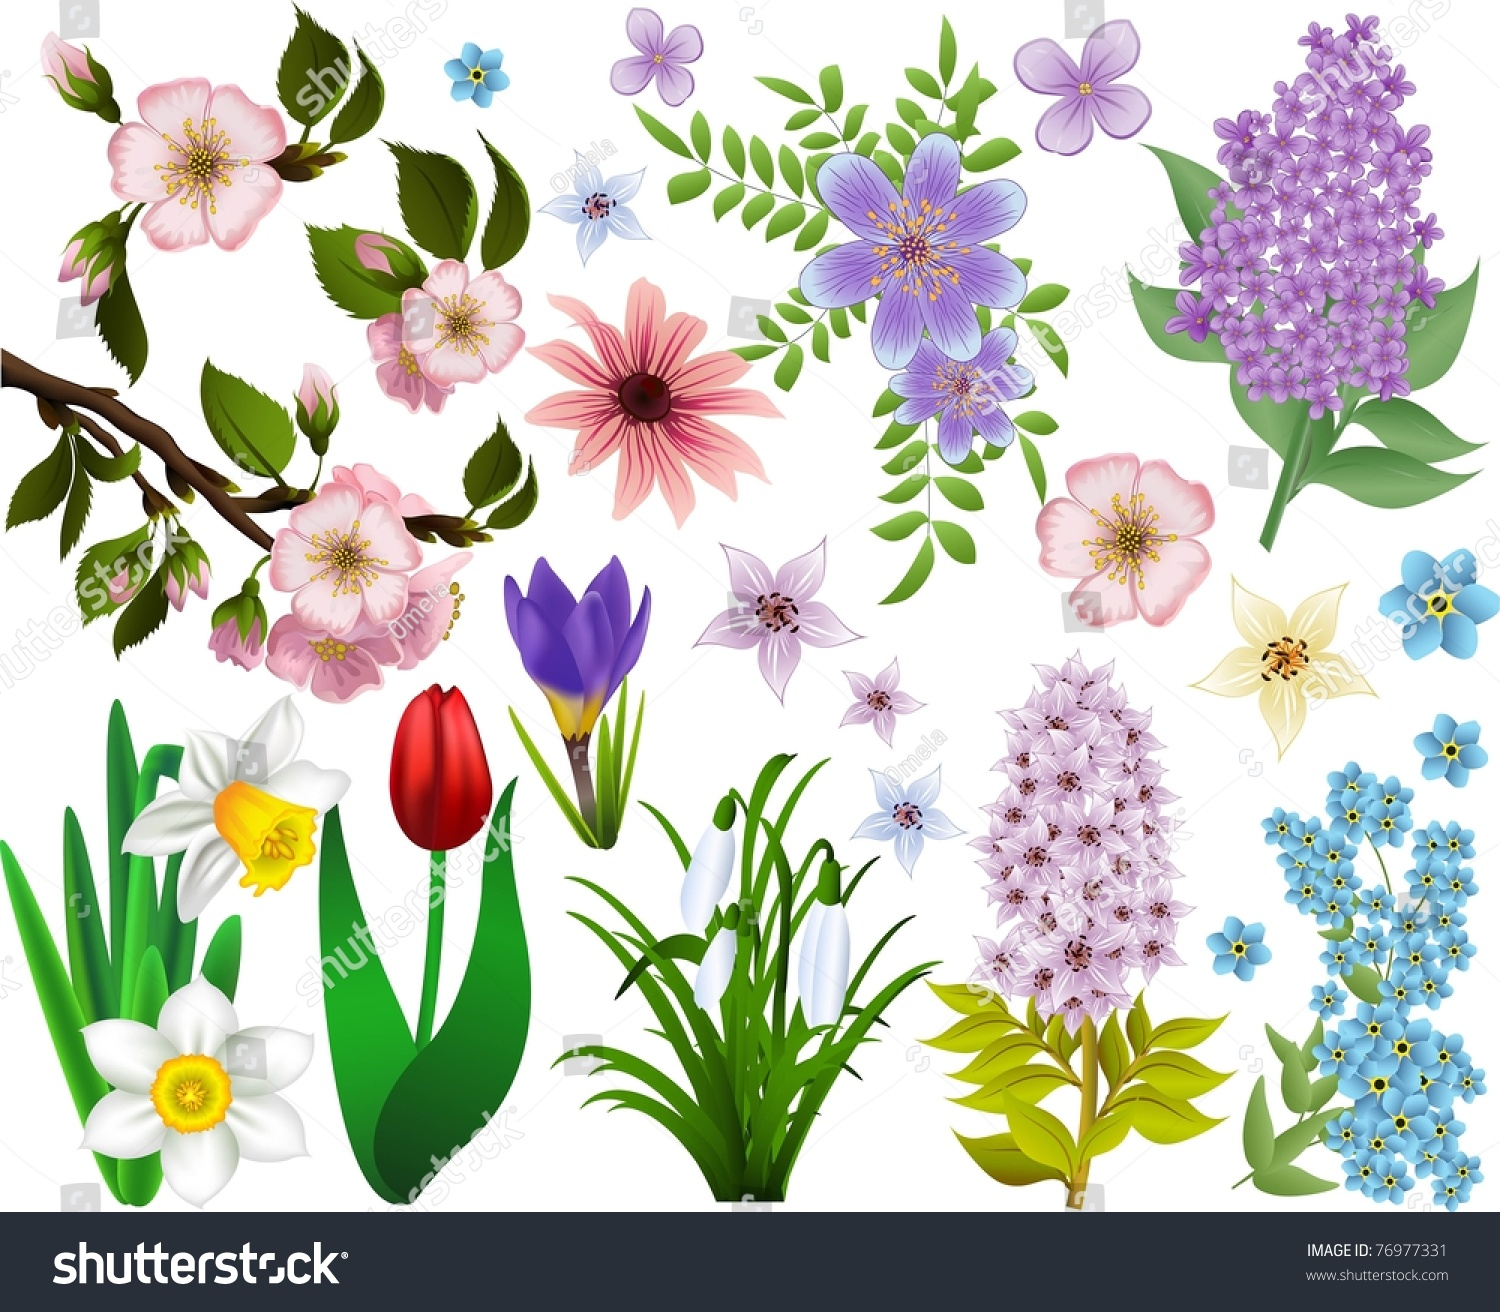 Set spring flowers all elements grouped stock vector 76977331 set of spring flowers all elements are grouped and easy to select mightylinksfo